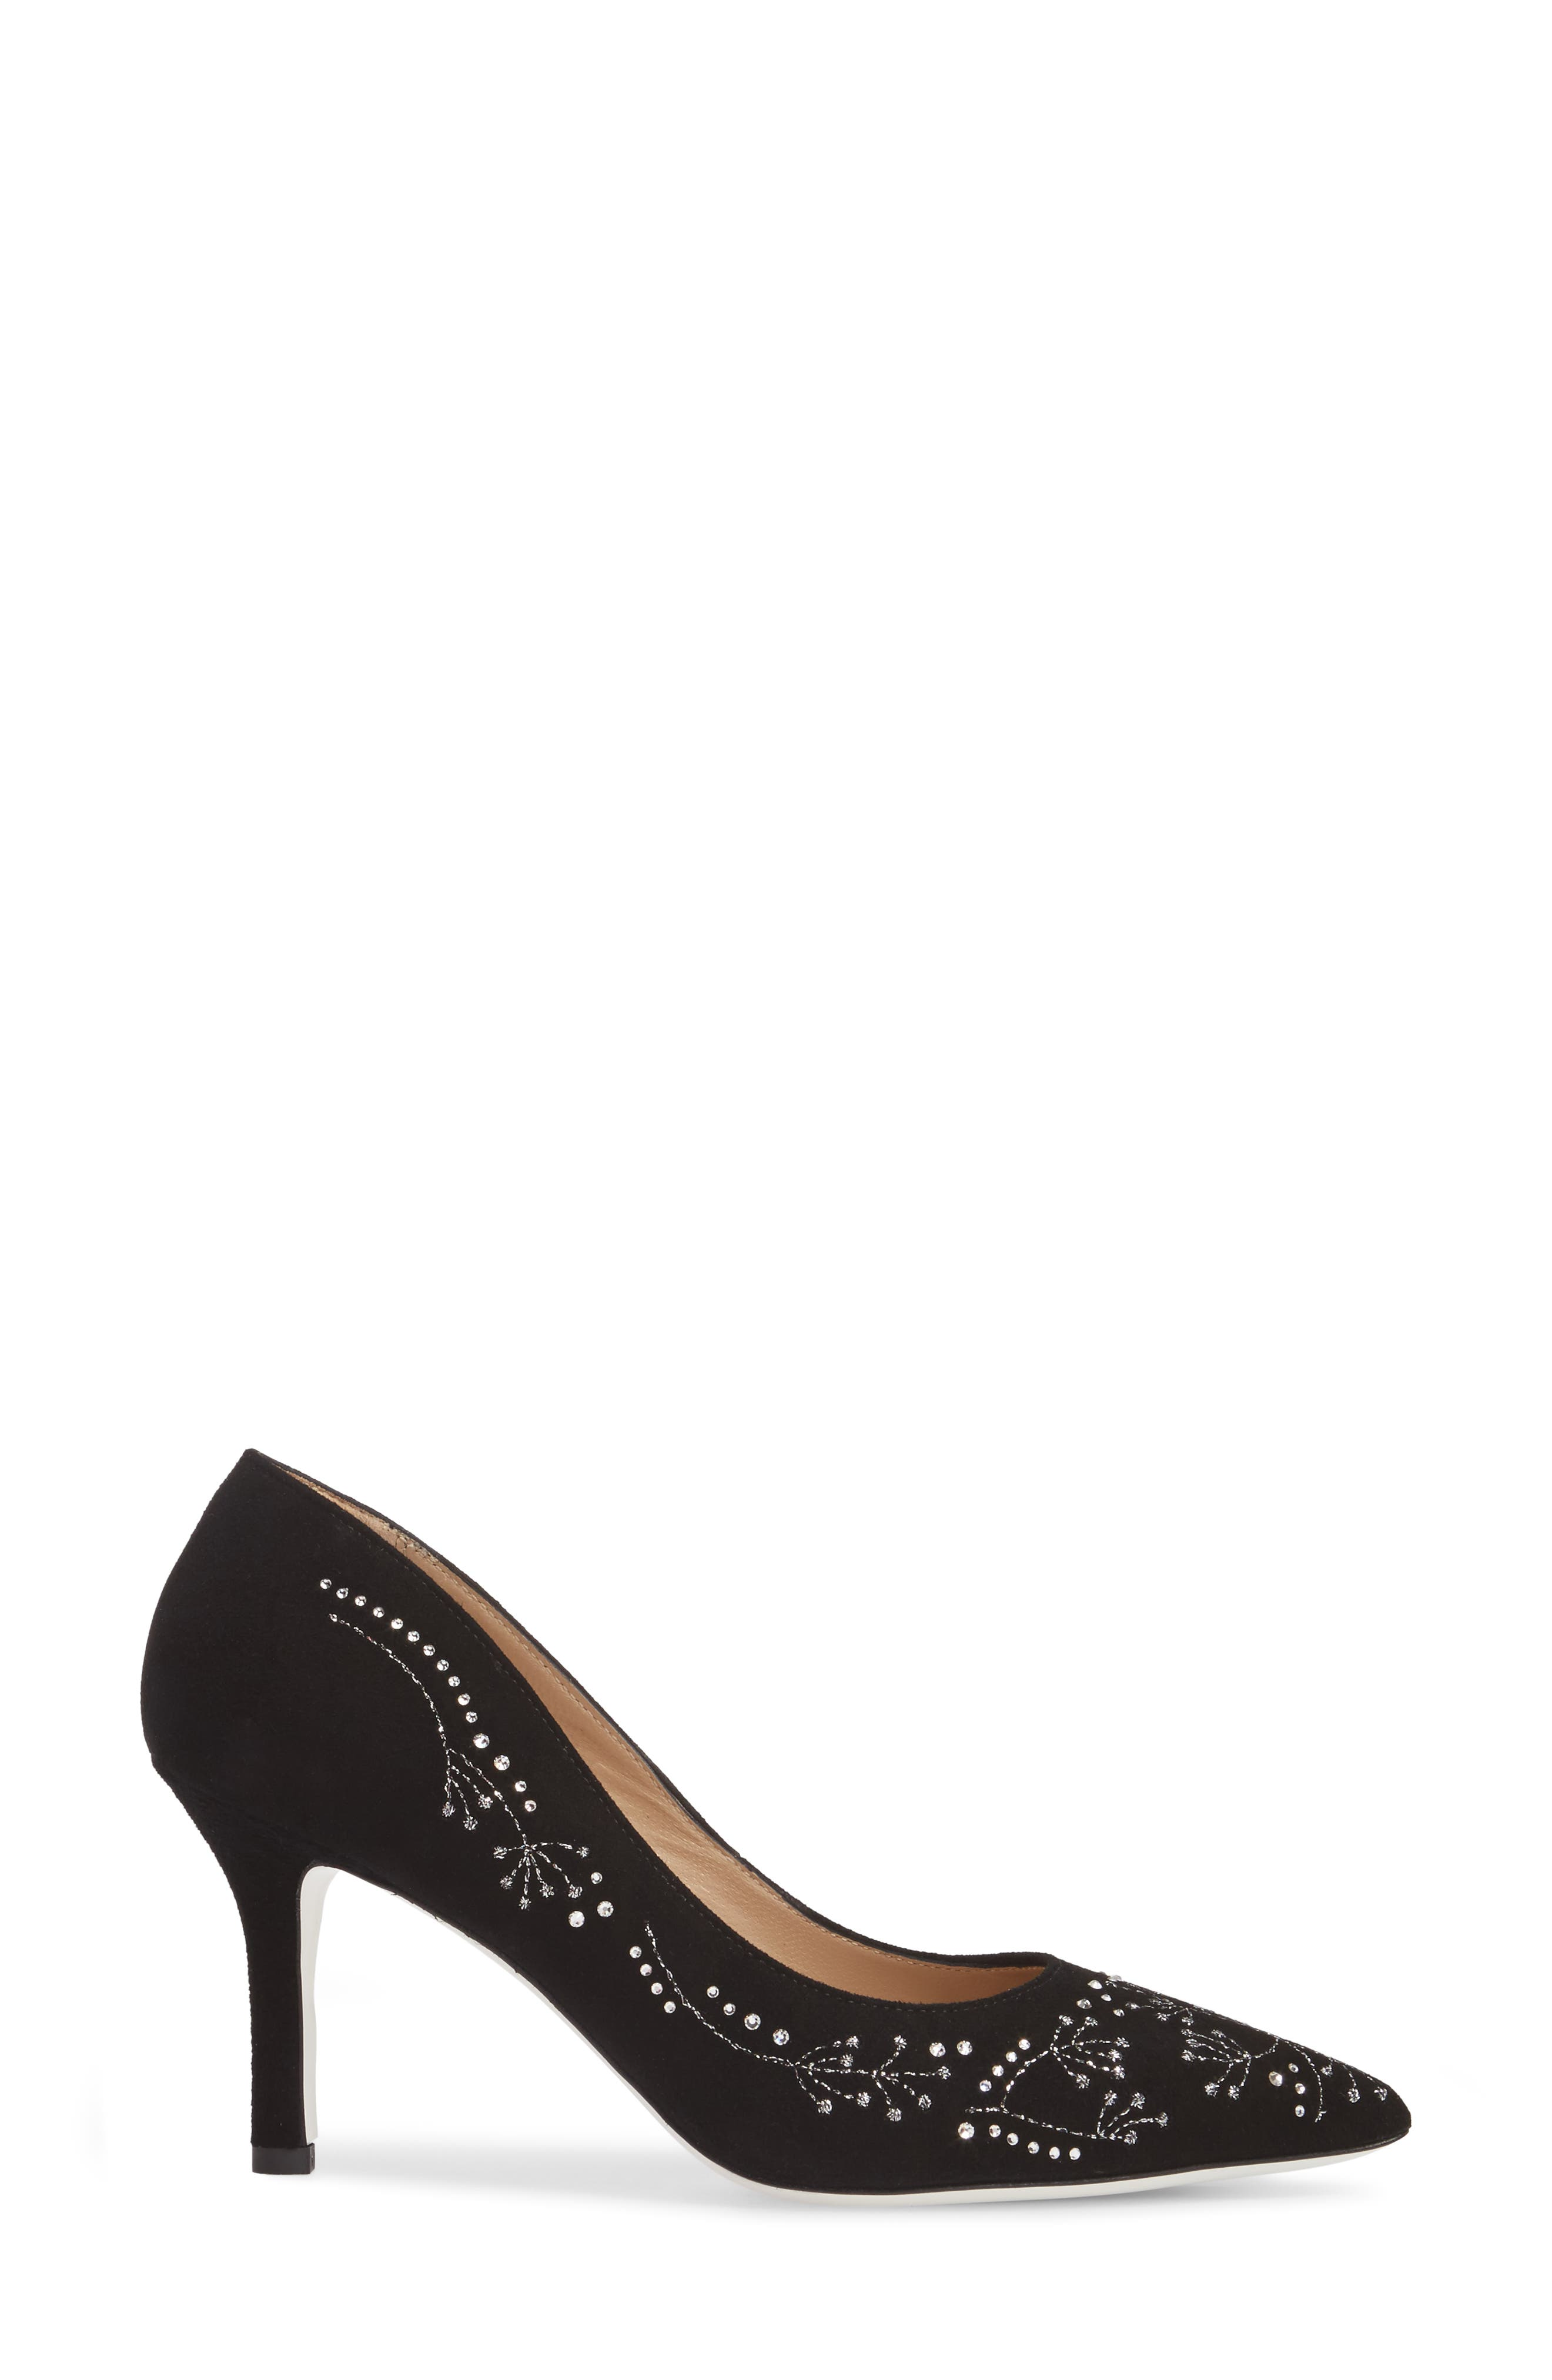 Carla Crystal Embellished Pump,                             Alternate thumbnail 3, color,                             Onyx Suede